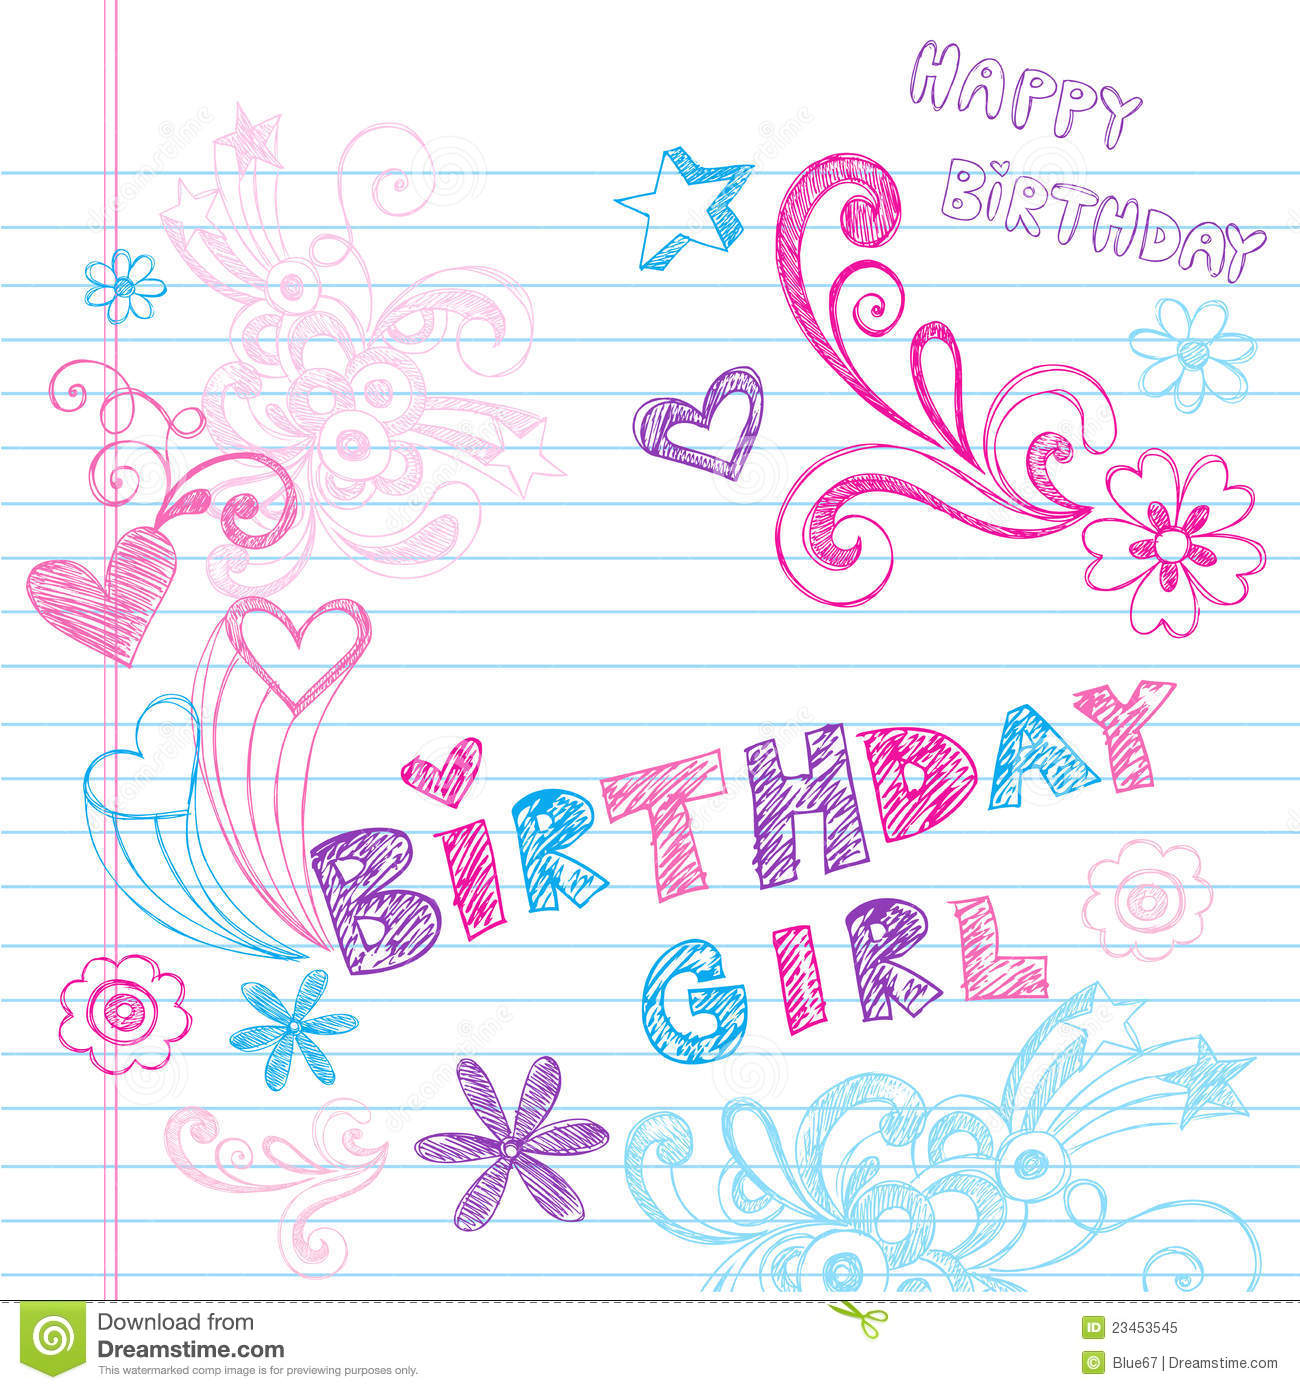 birthday girl wallpaper ; birthday-girl-sketchy-notebook-doodles-vector-23453545